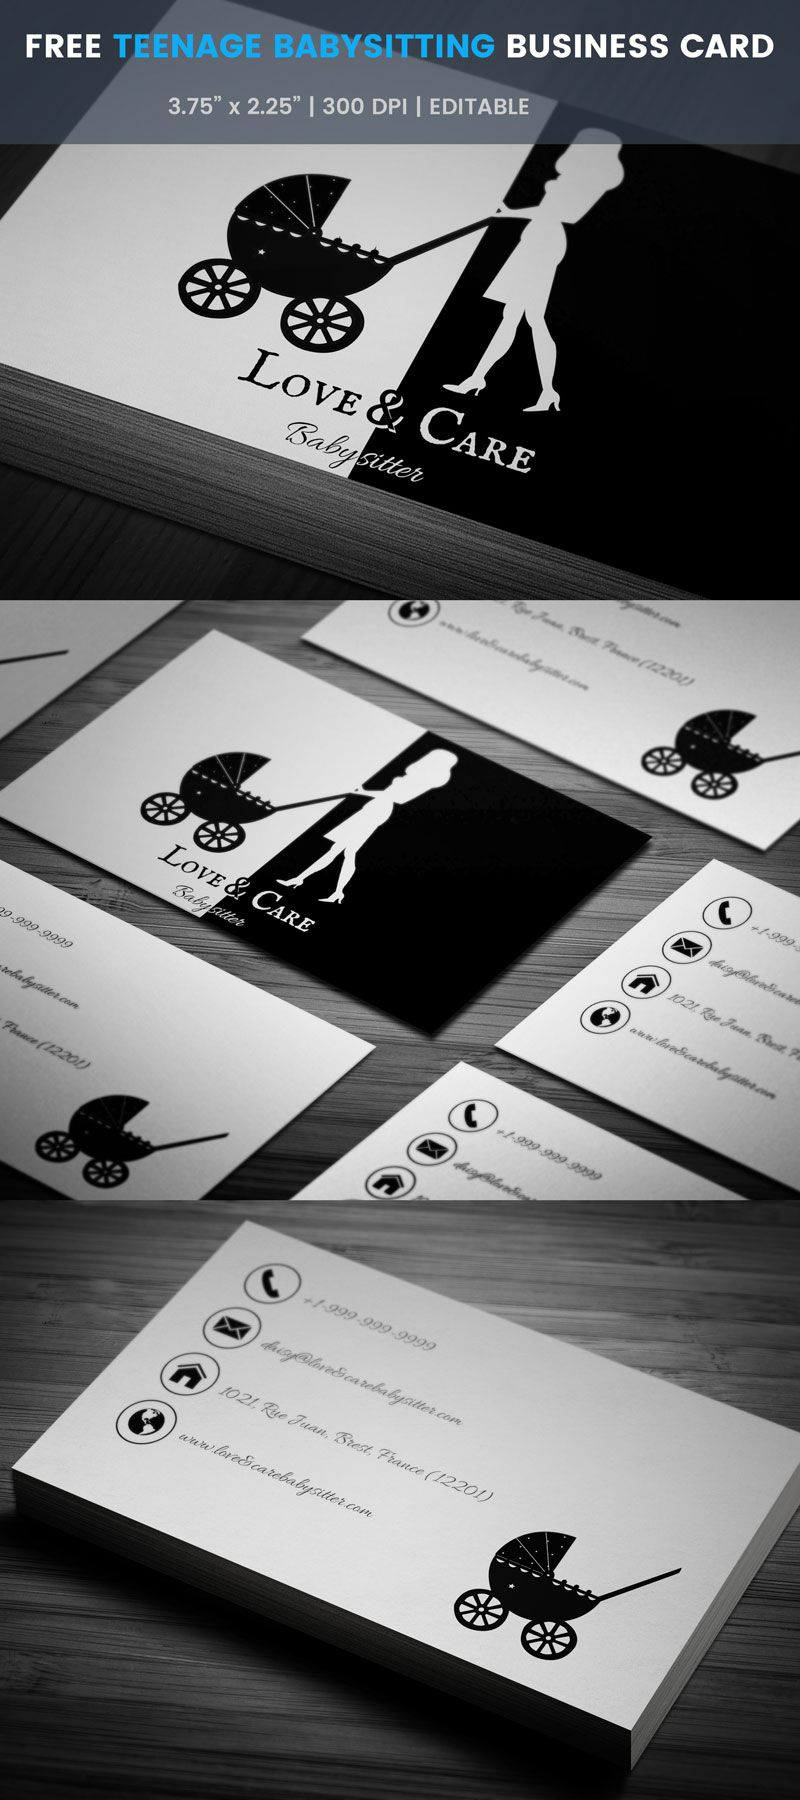 Daycare Babysitting Business Card Full Preview Free Business Card Templates Square Business Cards Modern Business Cards